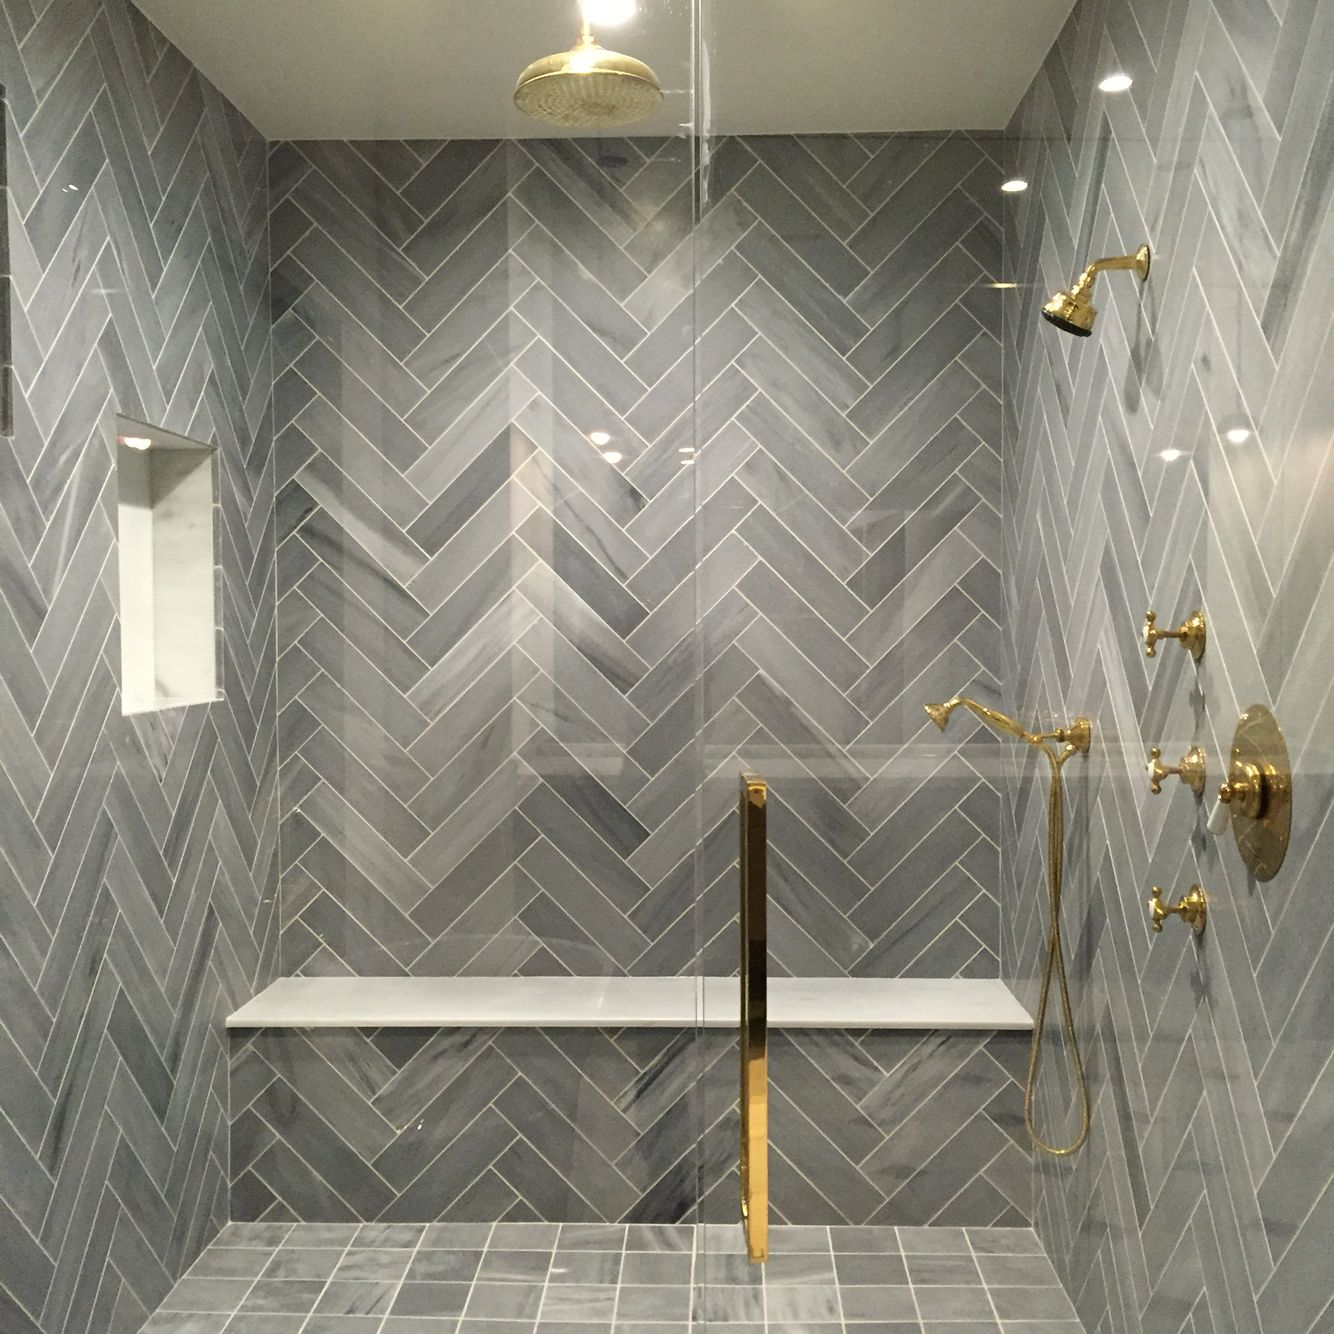 Studio Condo Interior Design Ideas: Stunning Shower Herring Bone Lorca Marble By Tabarka